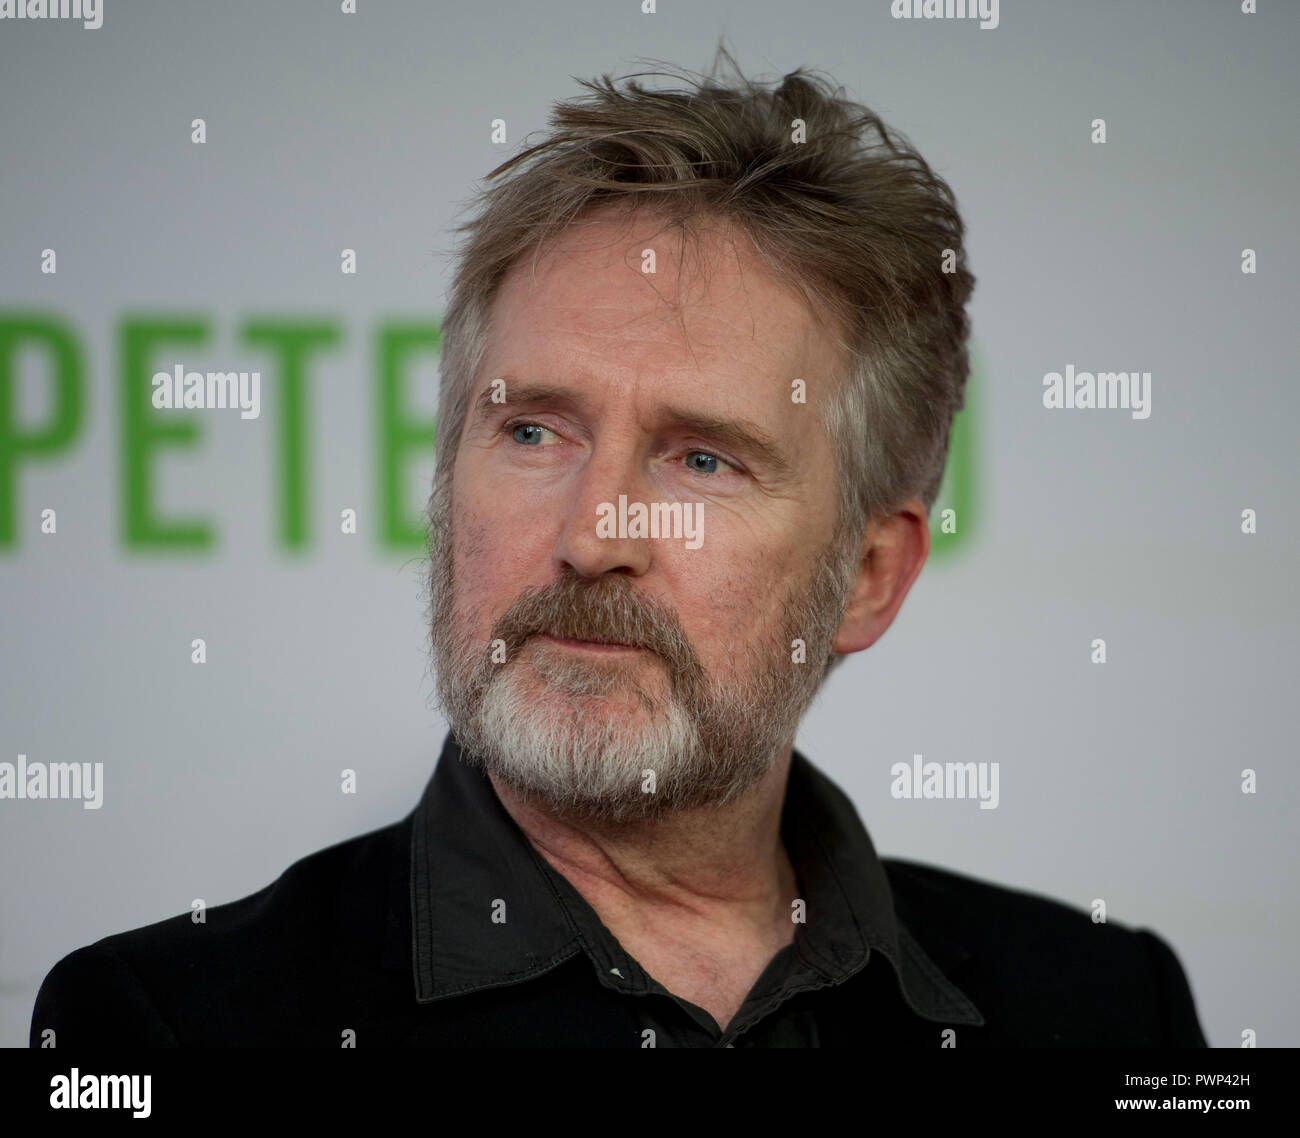 Manchester, UK. 17th October 2018. Actor Pearce Quigley who plays the character Joshua arrives at the BFI London Film Festival premiere of Peterloo, at the Home complex in Manchester. Credit: Russell Hart/Alamy Live News - Stock Image